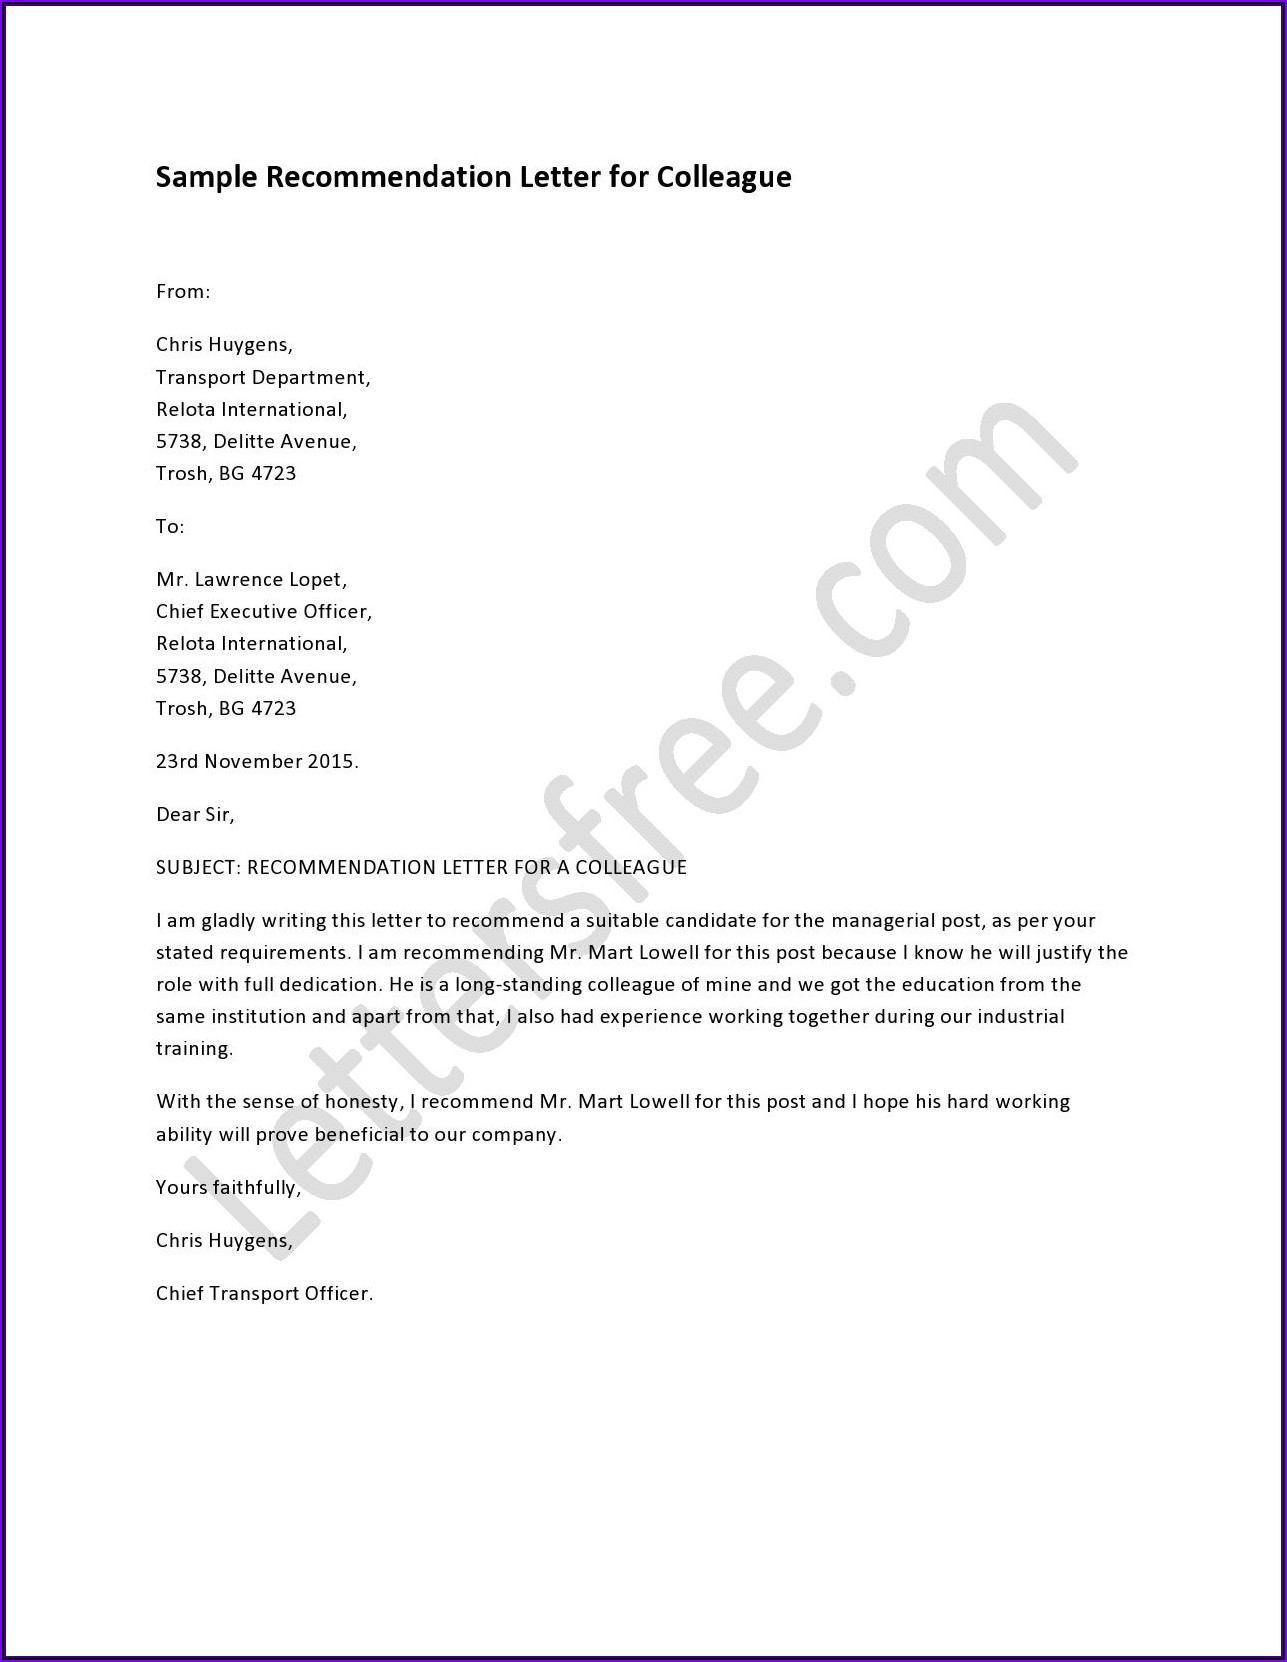 Letters Of Recommendation For Colleague Samples